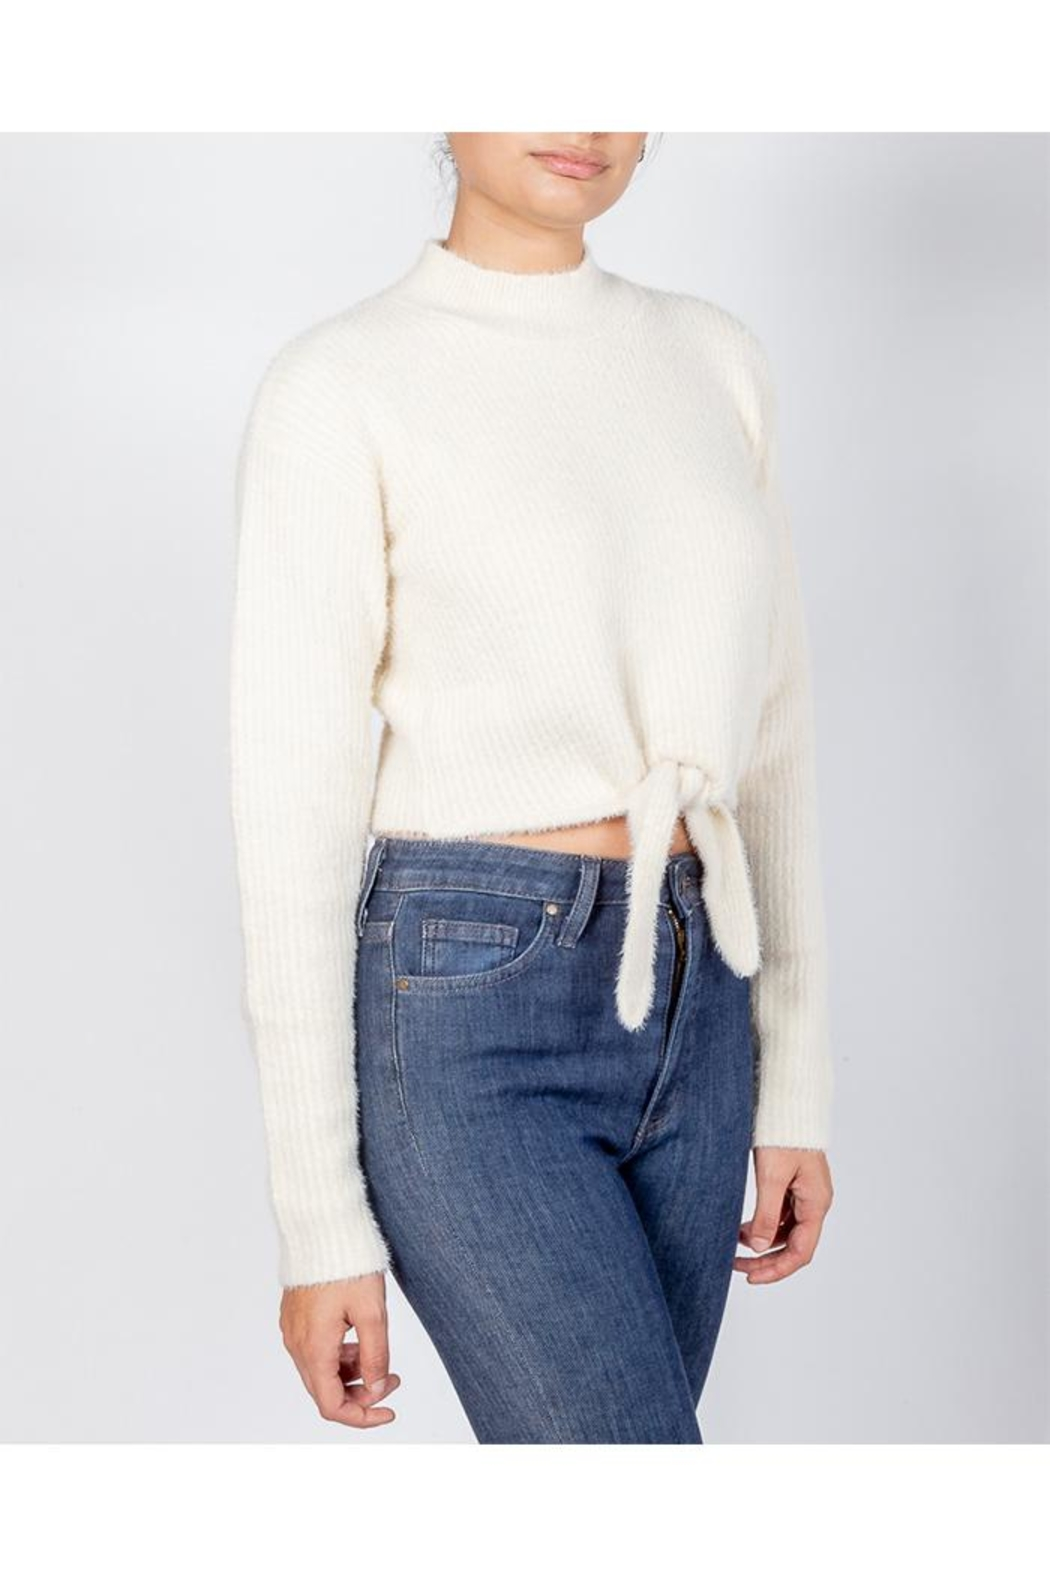 Cotton Candy Soft Front-Tie Sweater - Main Image